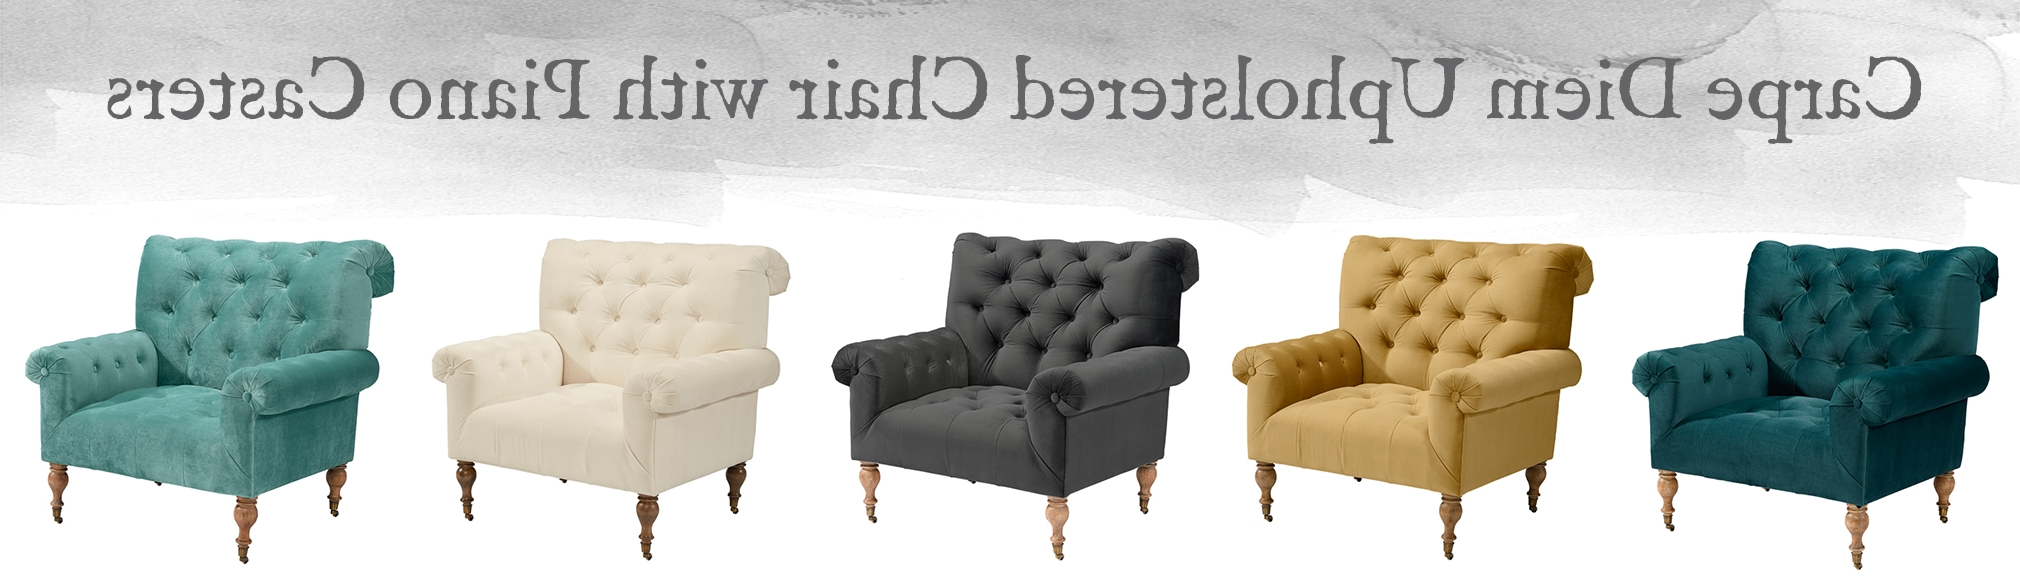 Magnolia Home Preview: Upholstered Living Room Collection (View 19 of 20)